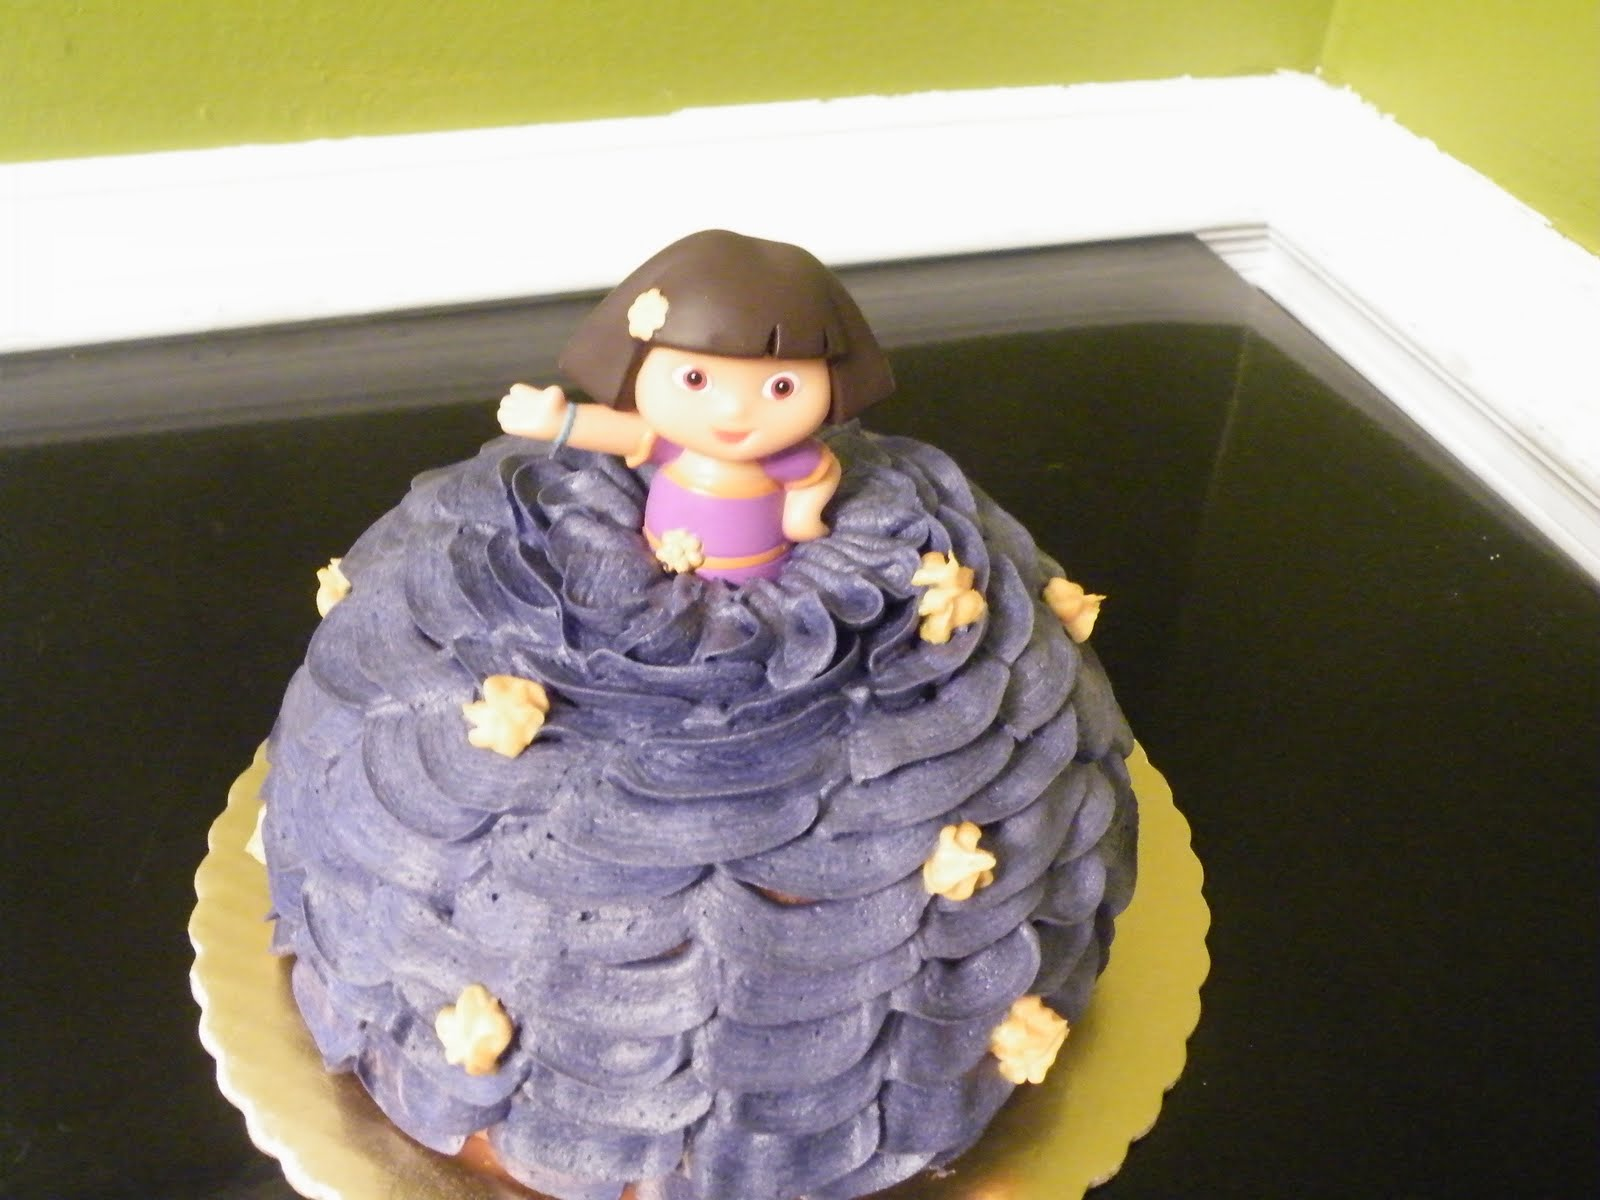 Cake Making Classes Stoke On Trent : Pin Grindley Pottery Two Tier Cake Stokeontrent Posot ...